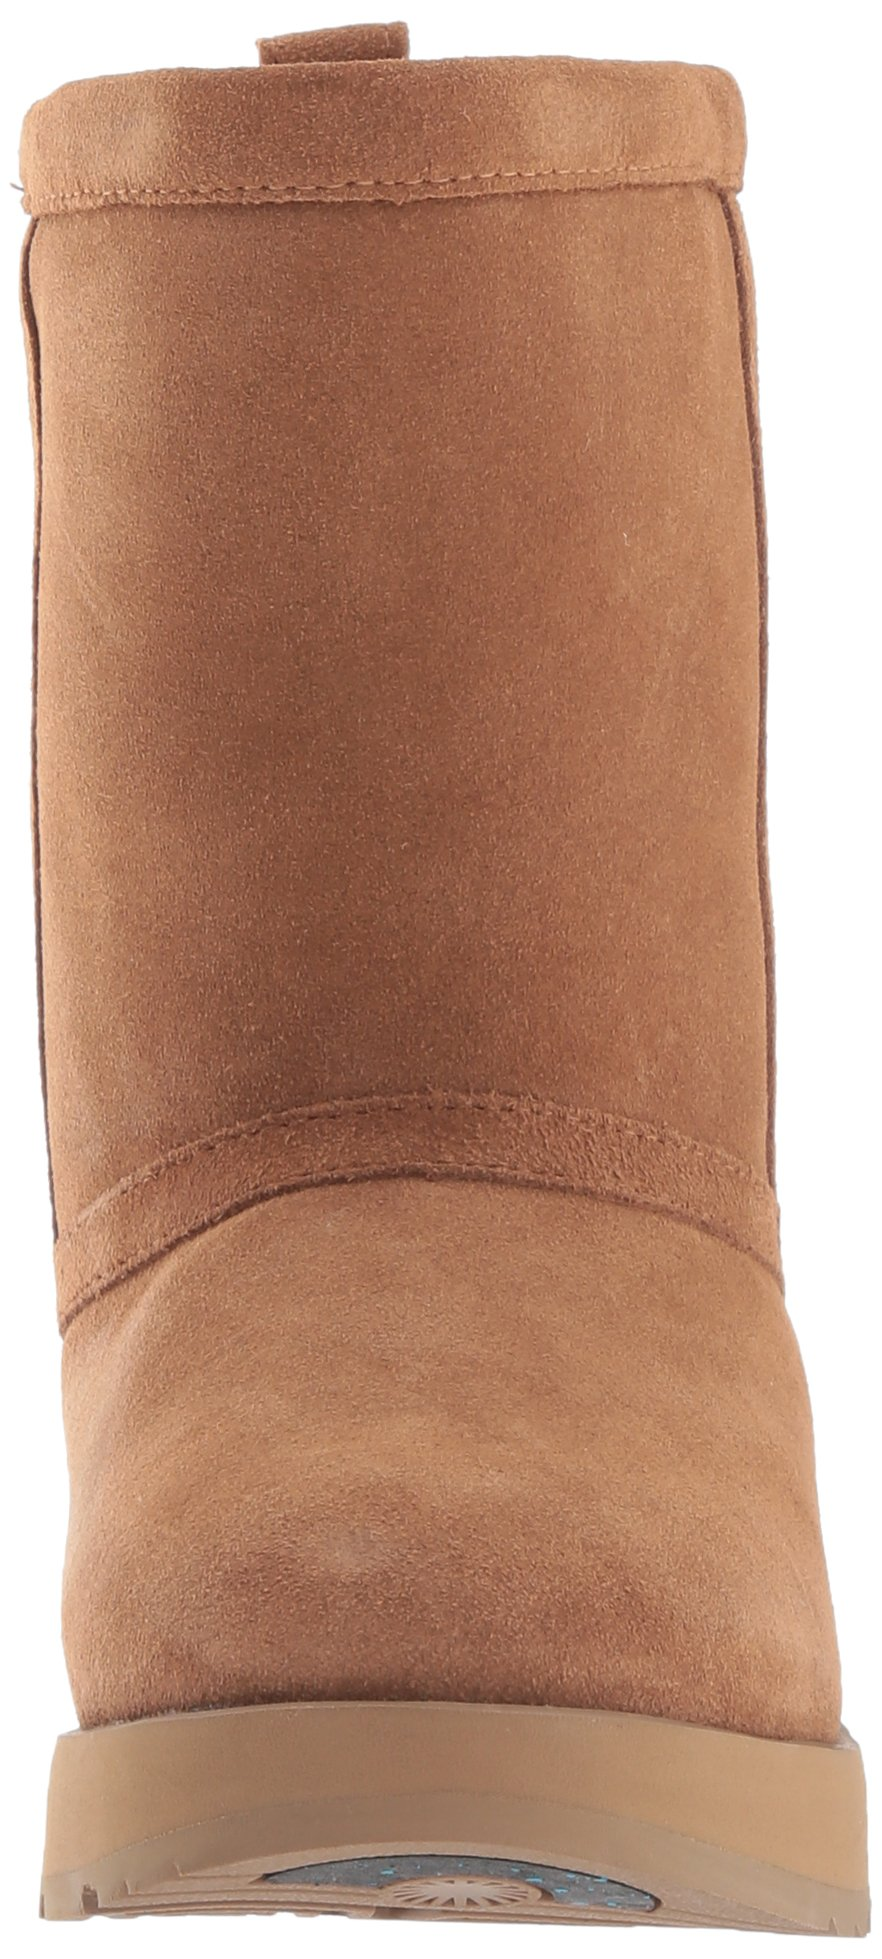 UGG Women's Classic Short Waterproof Snow Boot, Chestnut, 9 M US by UGG (Image #4)